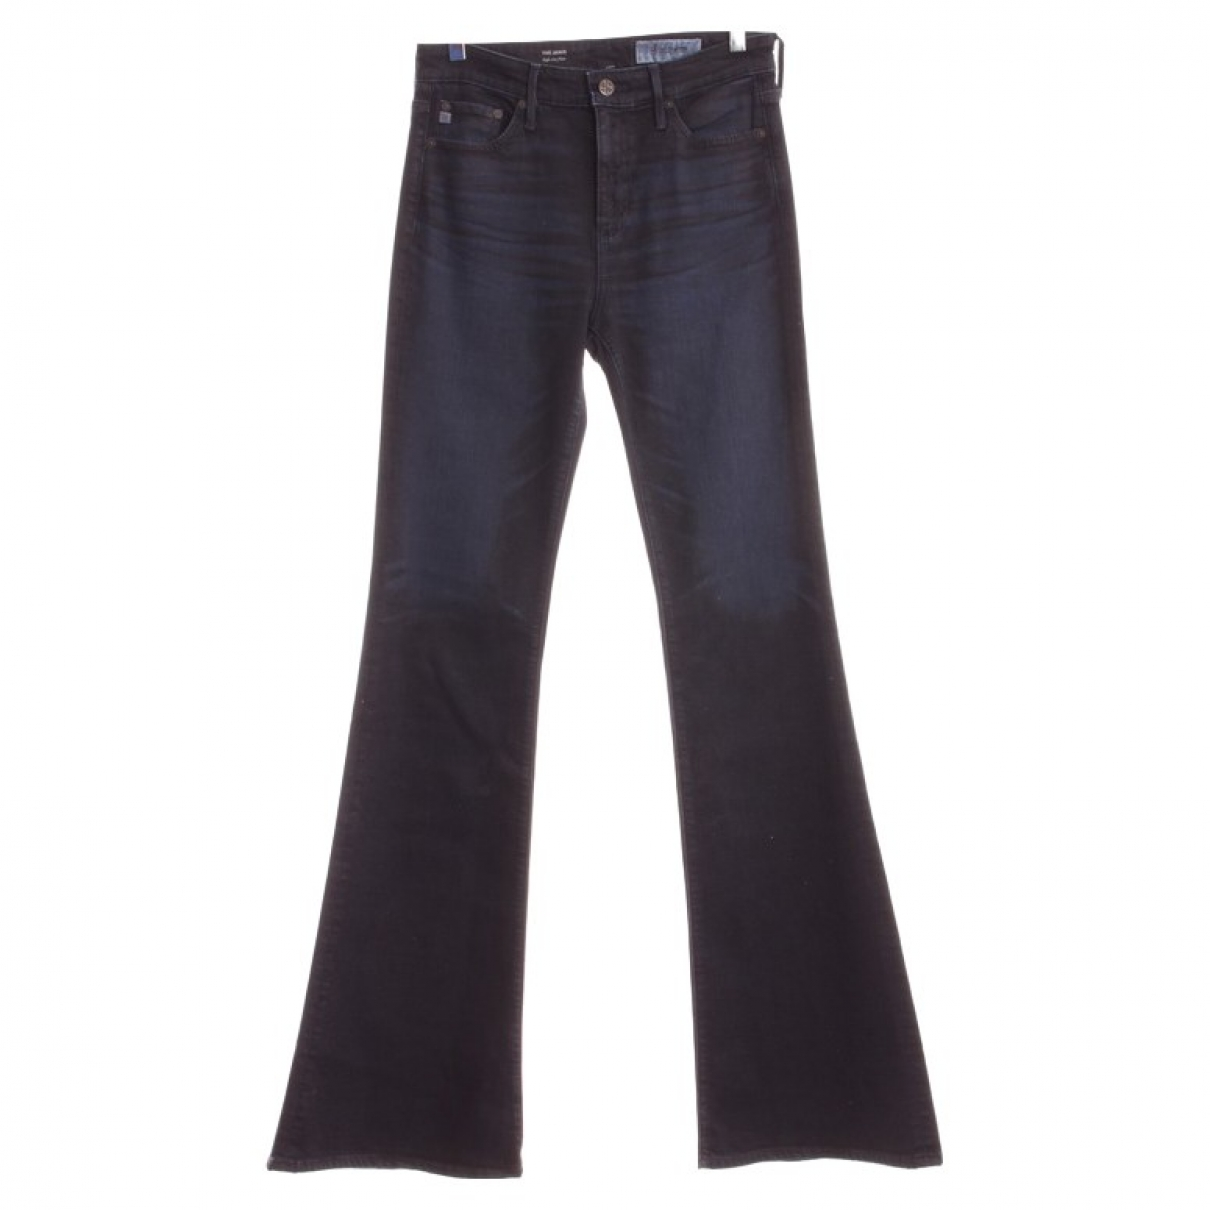 Ag Jeans \N Blue Cotton - elasthane Jeans for Women 27 US